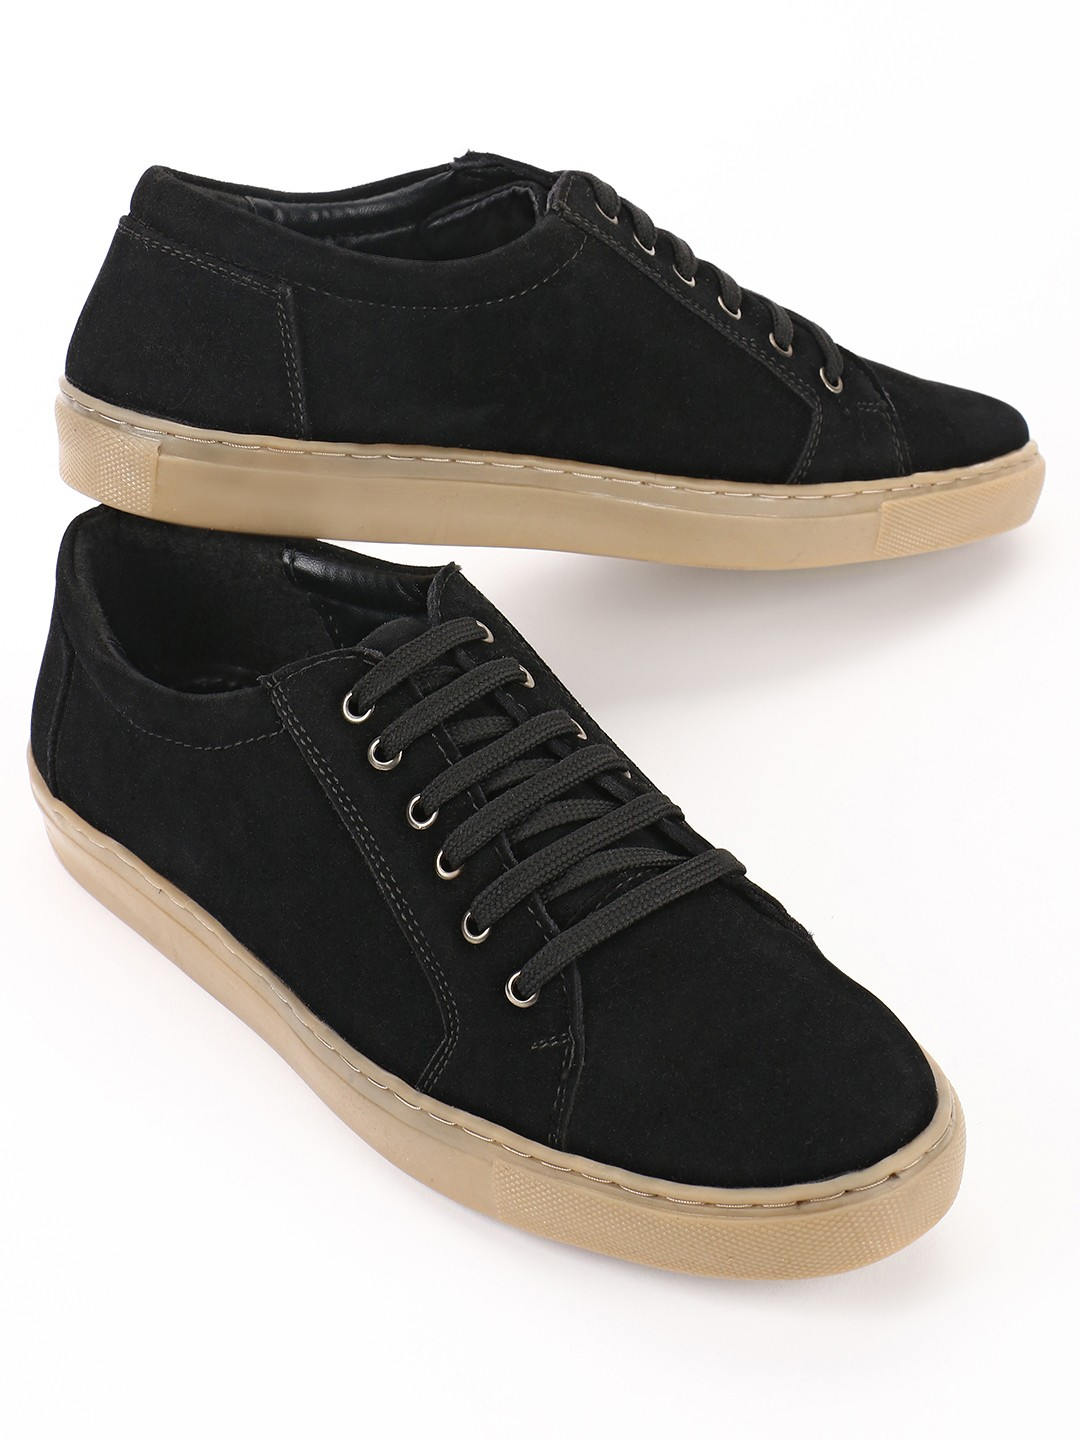 Bolt Of The Good Stuff Black Suede Lace Up Sneakers 1